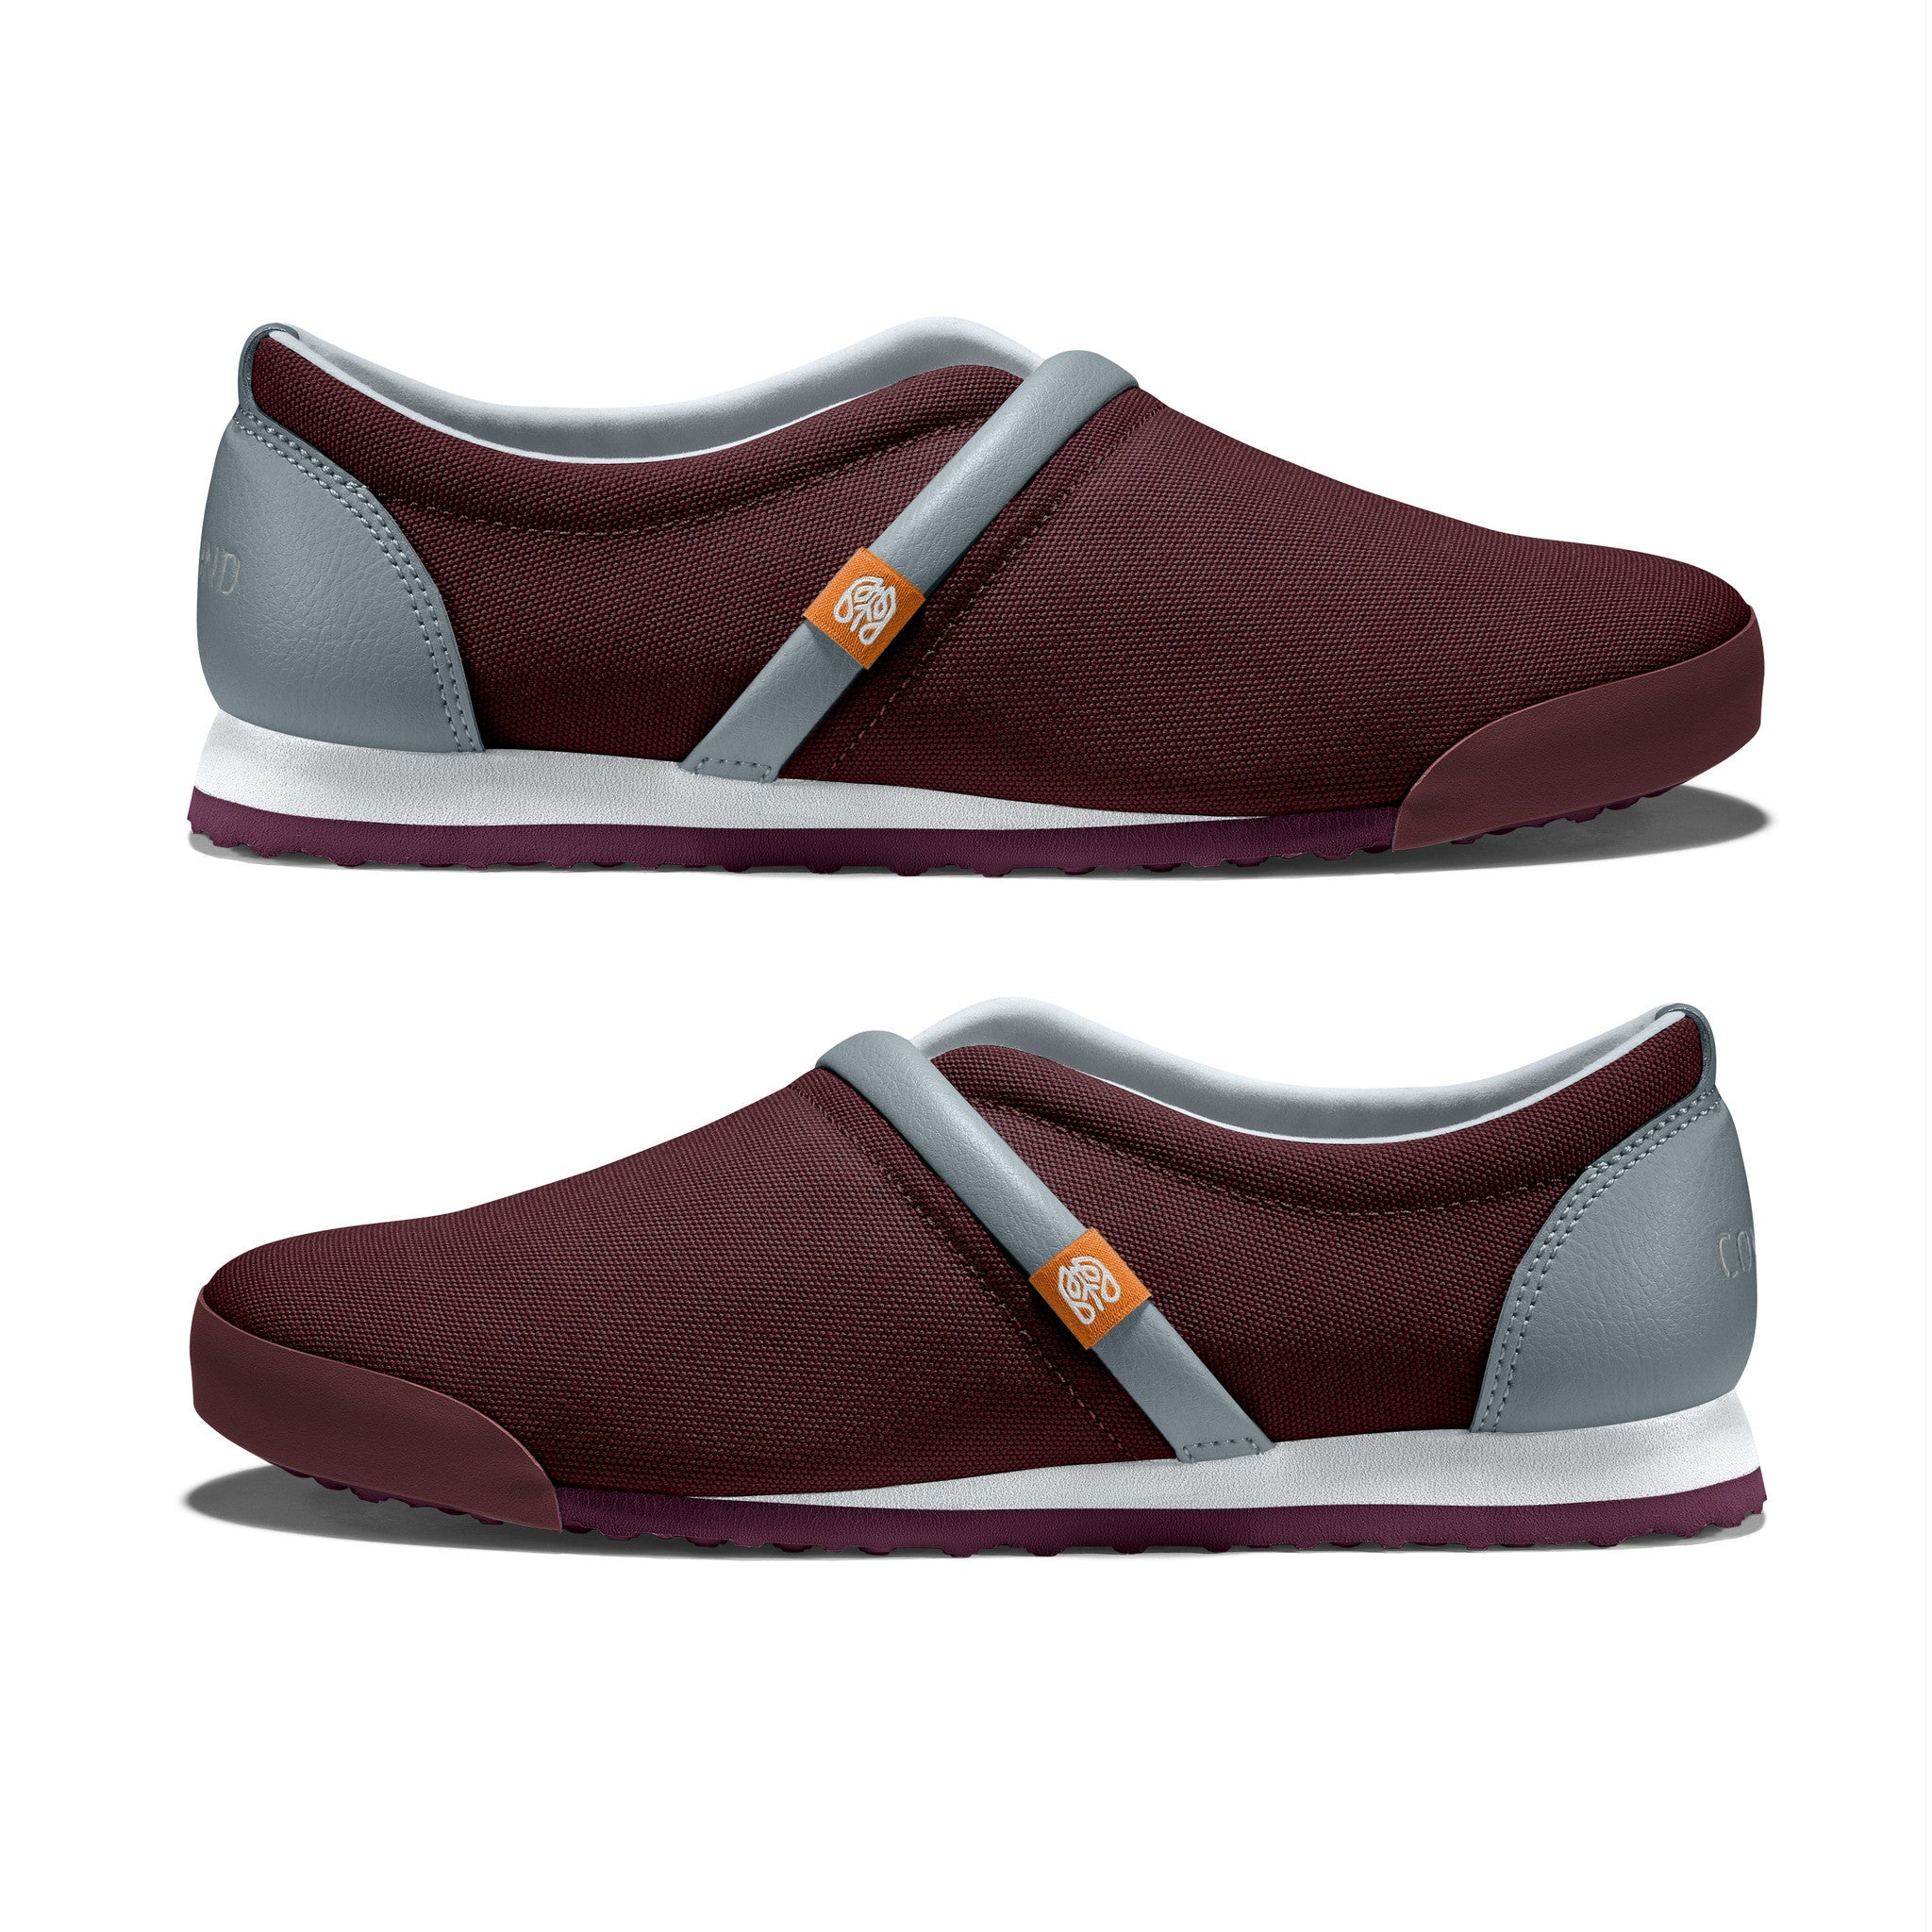 Cabernet - Common Ground Footwear Shoes Side View